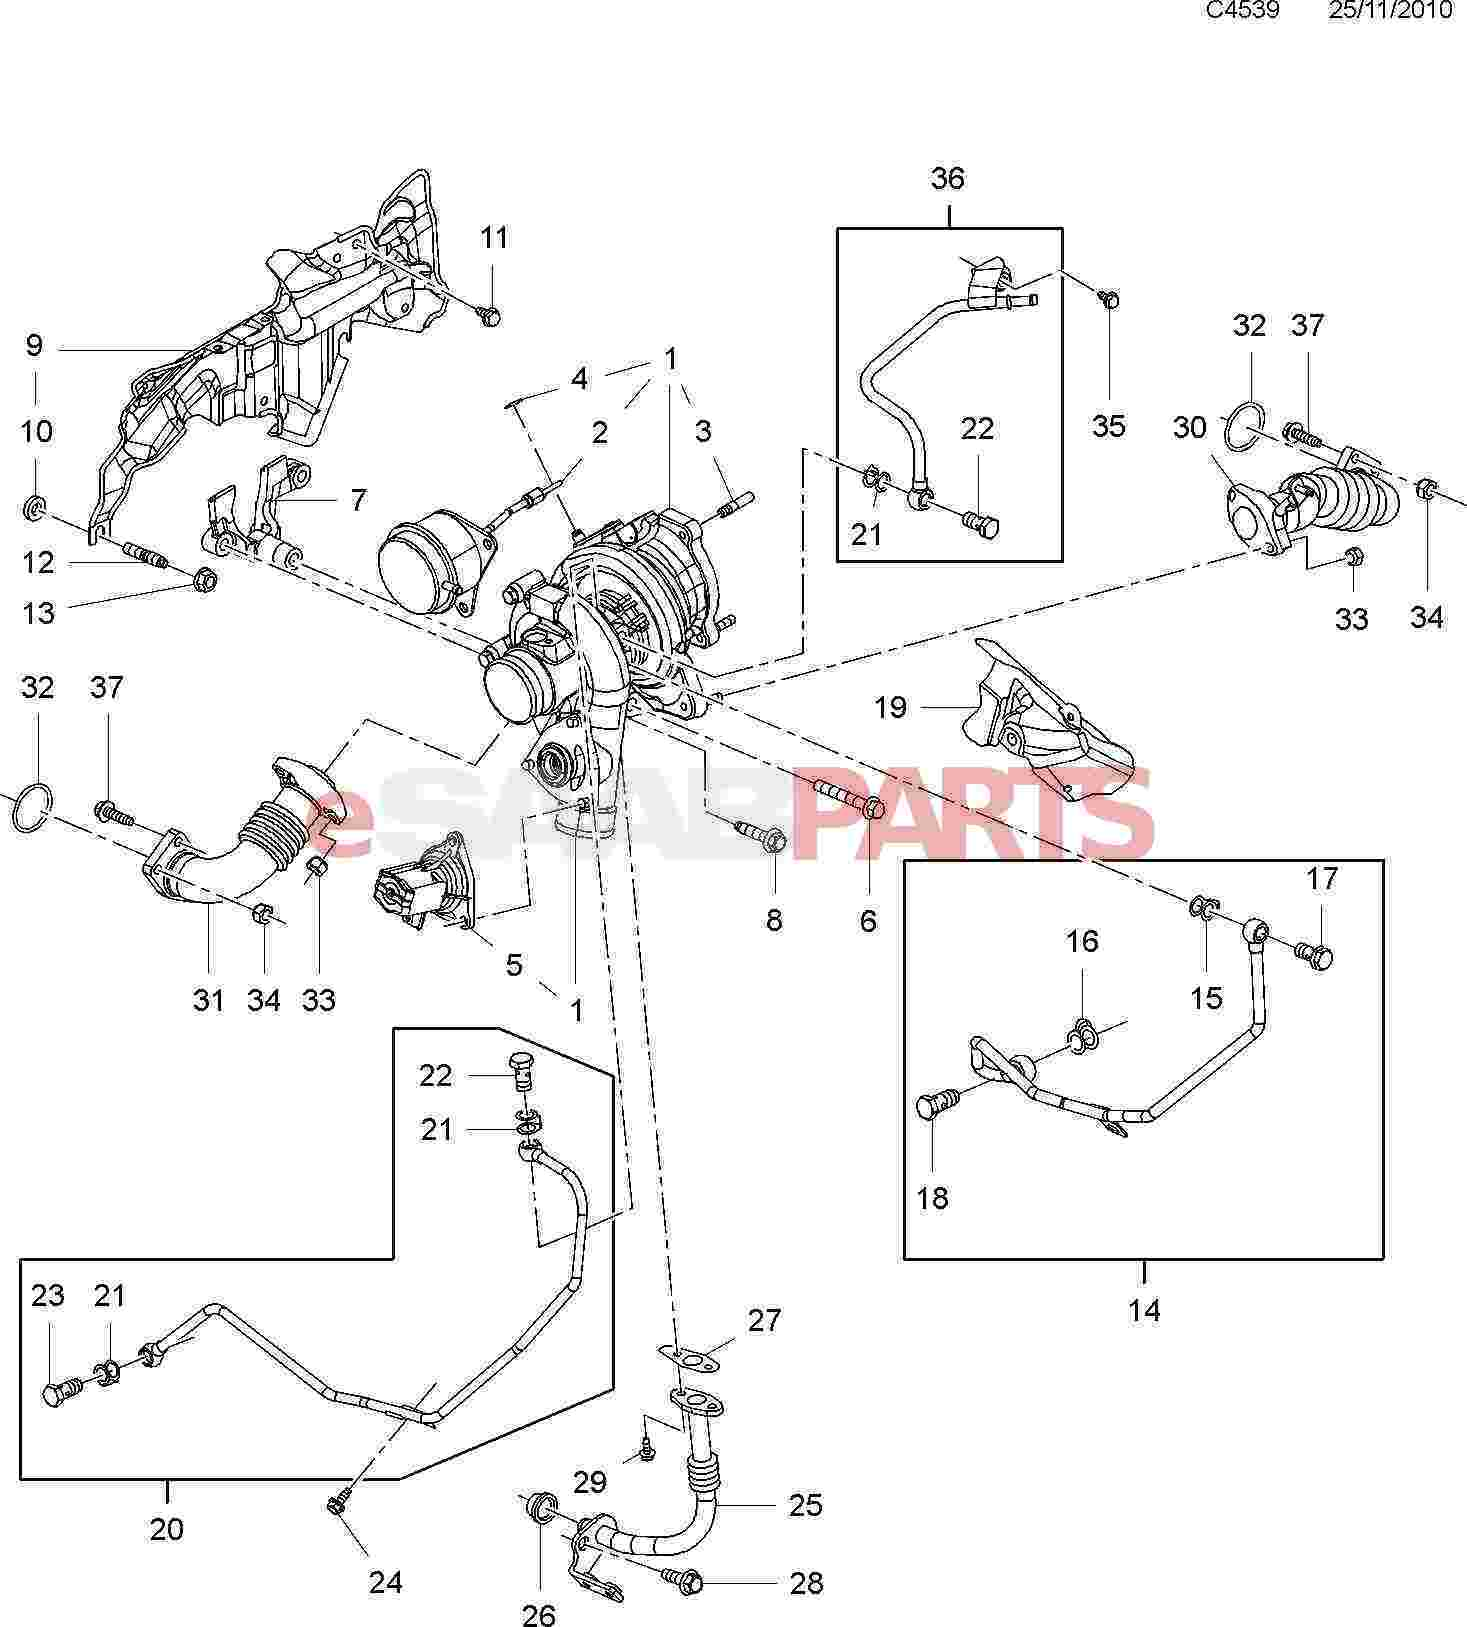 2002 Saab 9 3 Fuse Box Aero Auto Electrical Wiring Diagram 2x